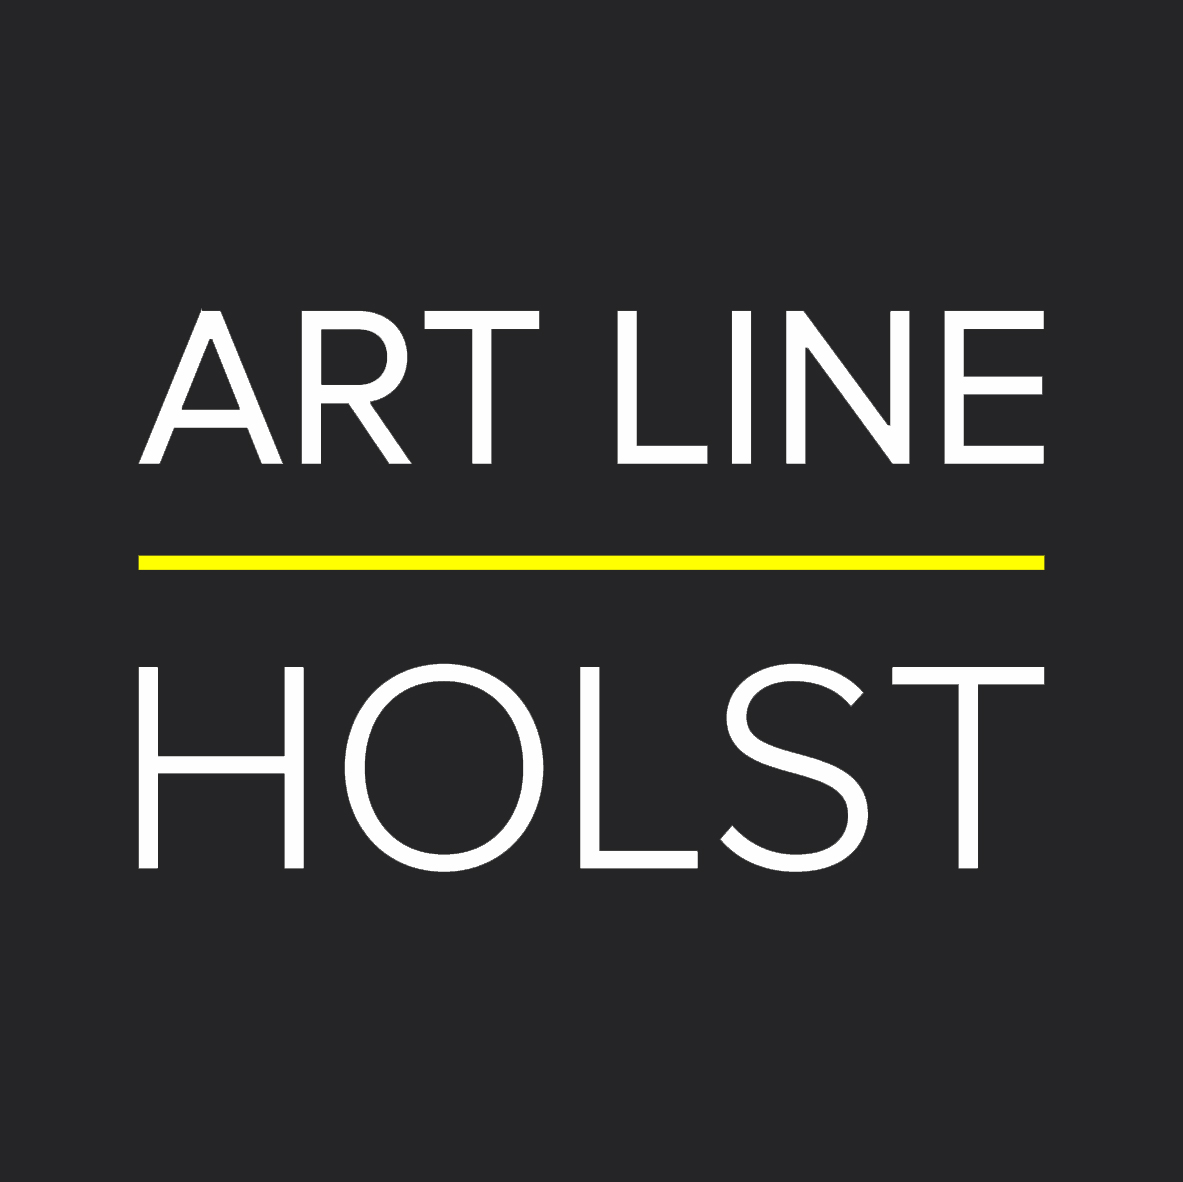 Artline Holst